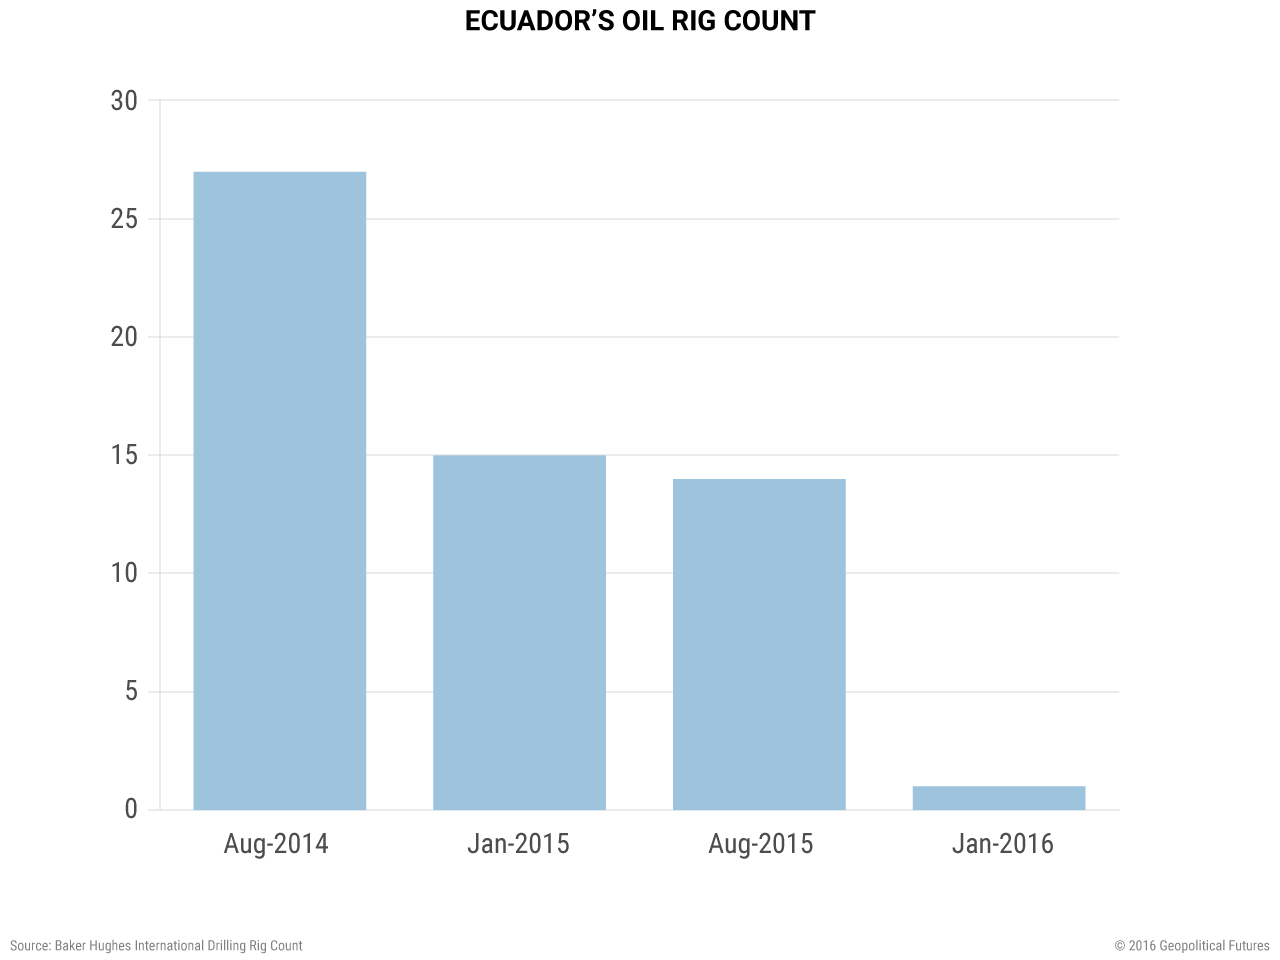 ecuador-oil-rig-count